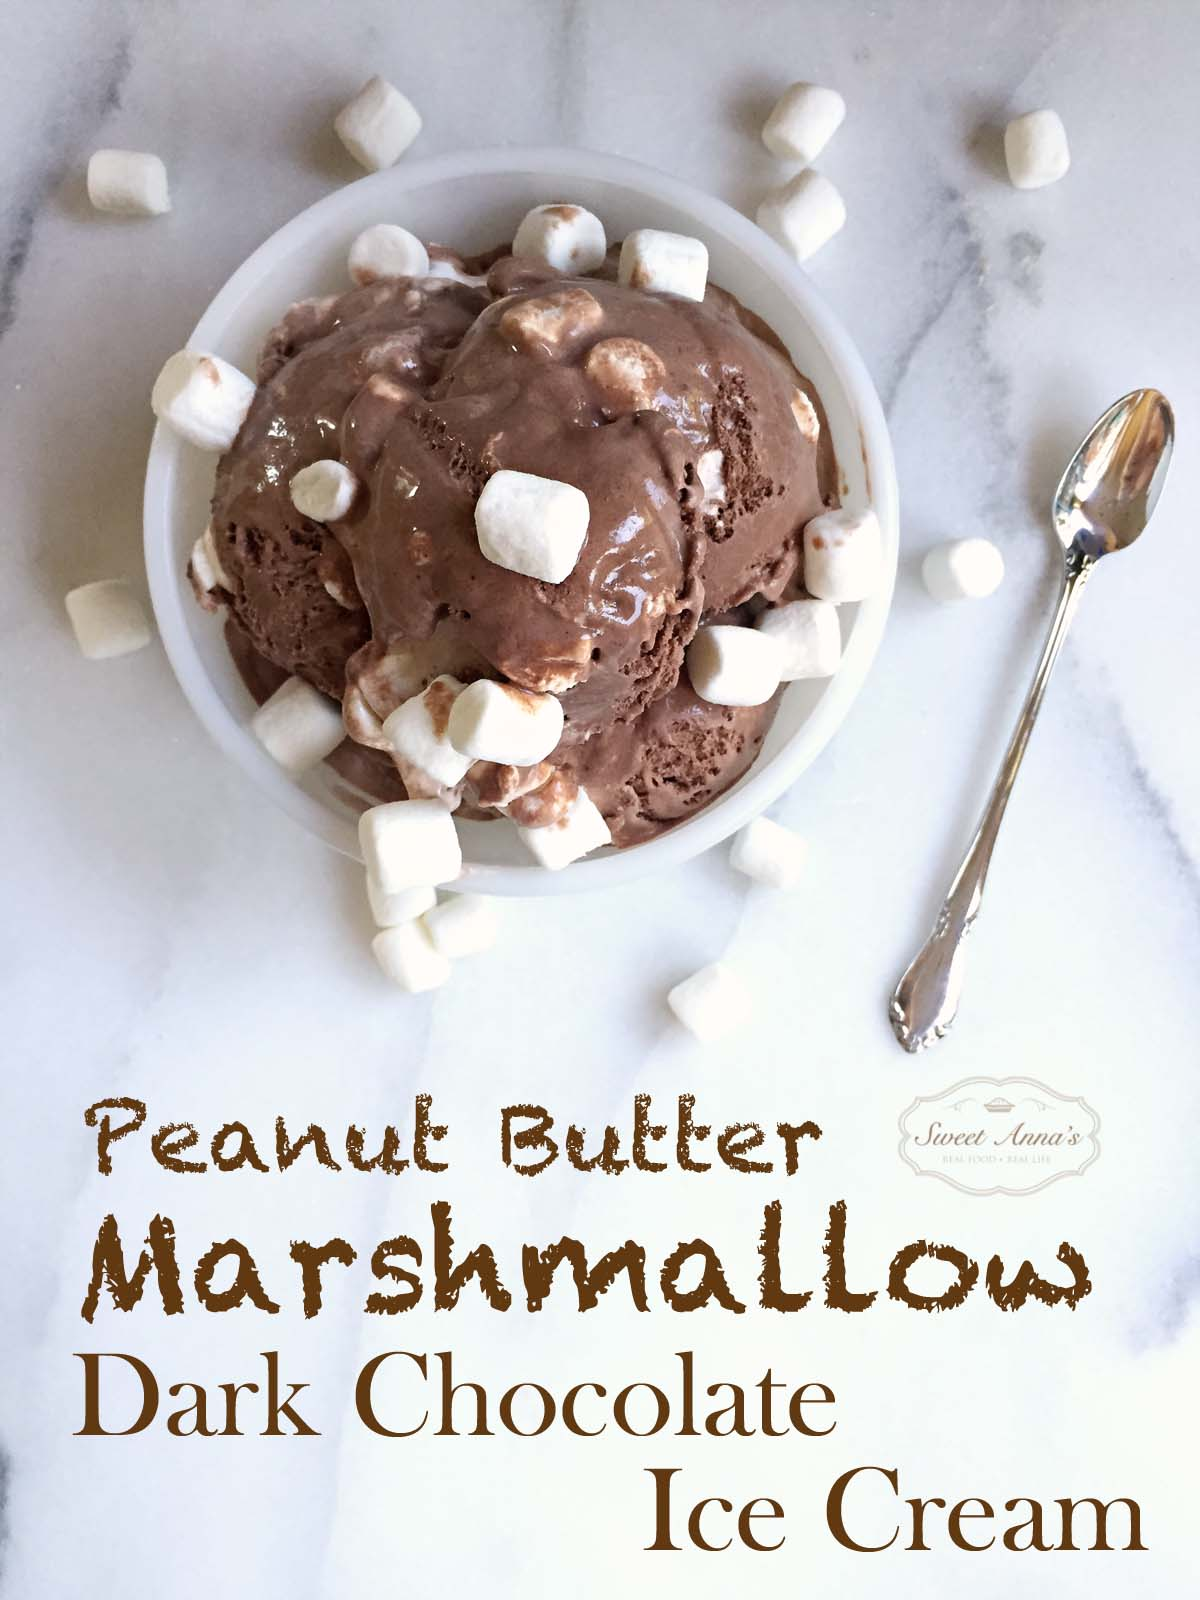 Homemade Peanut Butter Marshmallow Dark Chocolate Ice Cream - whip this up in your ice cream maker and you'll never have to run to the store for Ben & Jerry's again! | sweetannas.com